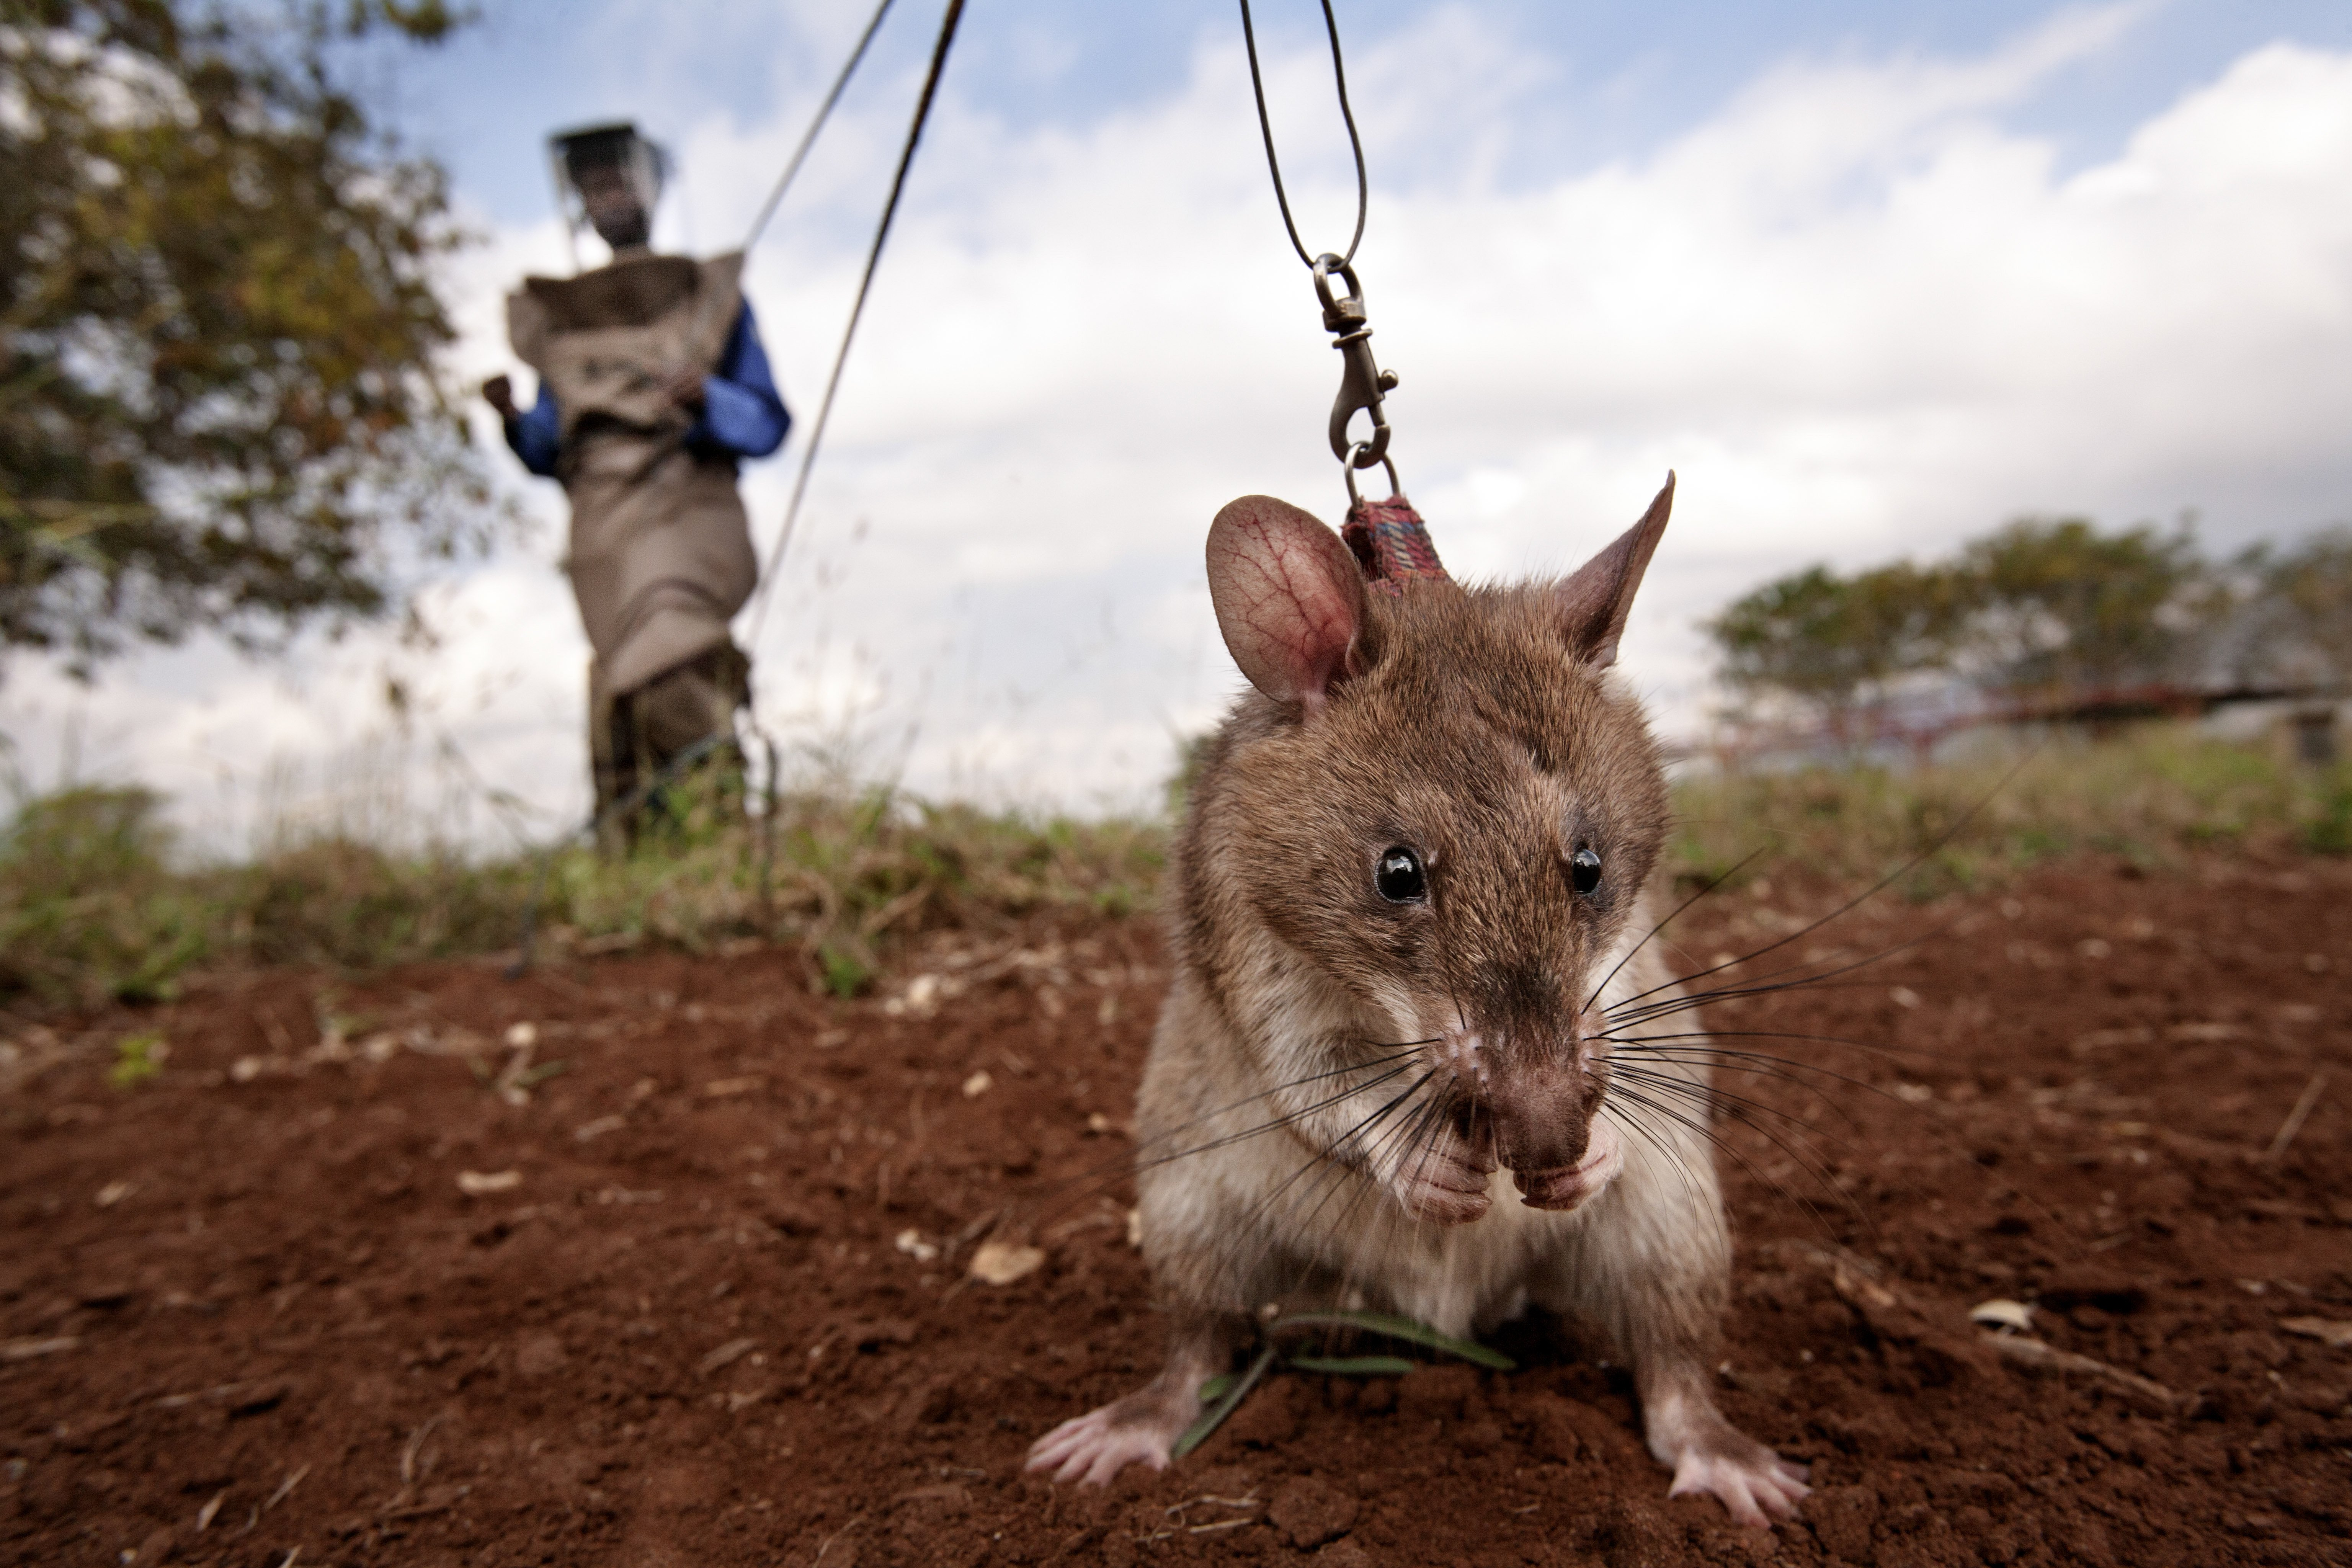 A trainer in a protective suit holds a HeroRAT on a leash as it searches for mines on June 20, 2014 in Morogoro, Tanzania. . The distance created between the trainer and the rat saves human lives and significantly curtails the risks to the human mine clearers.